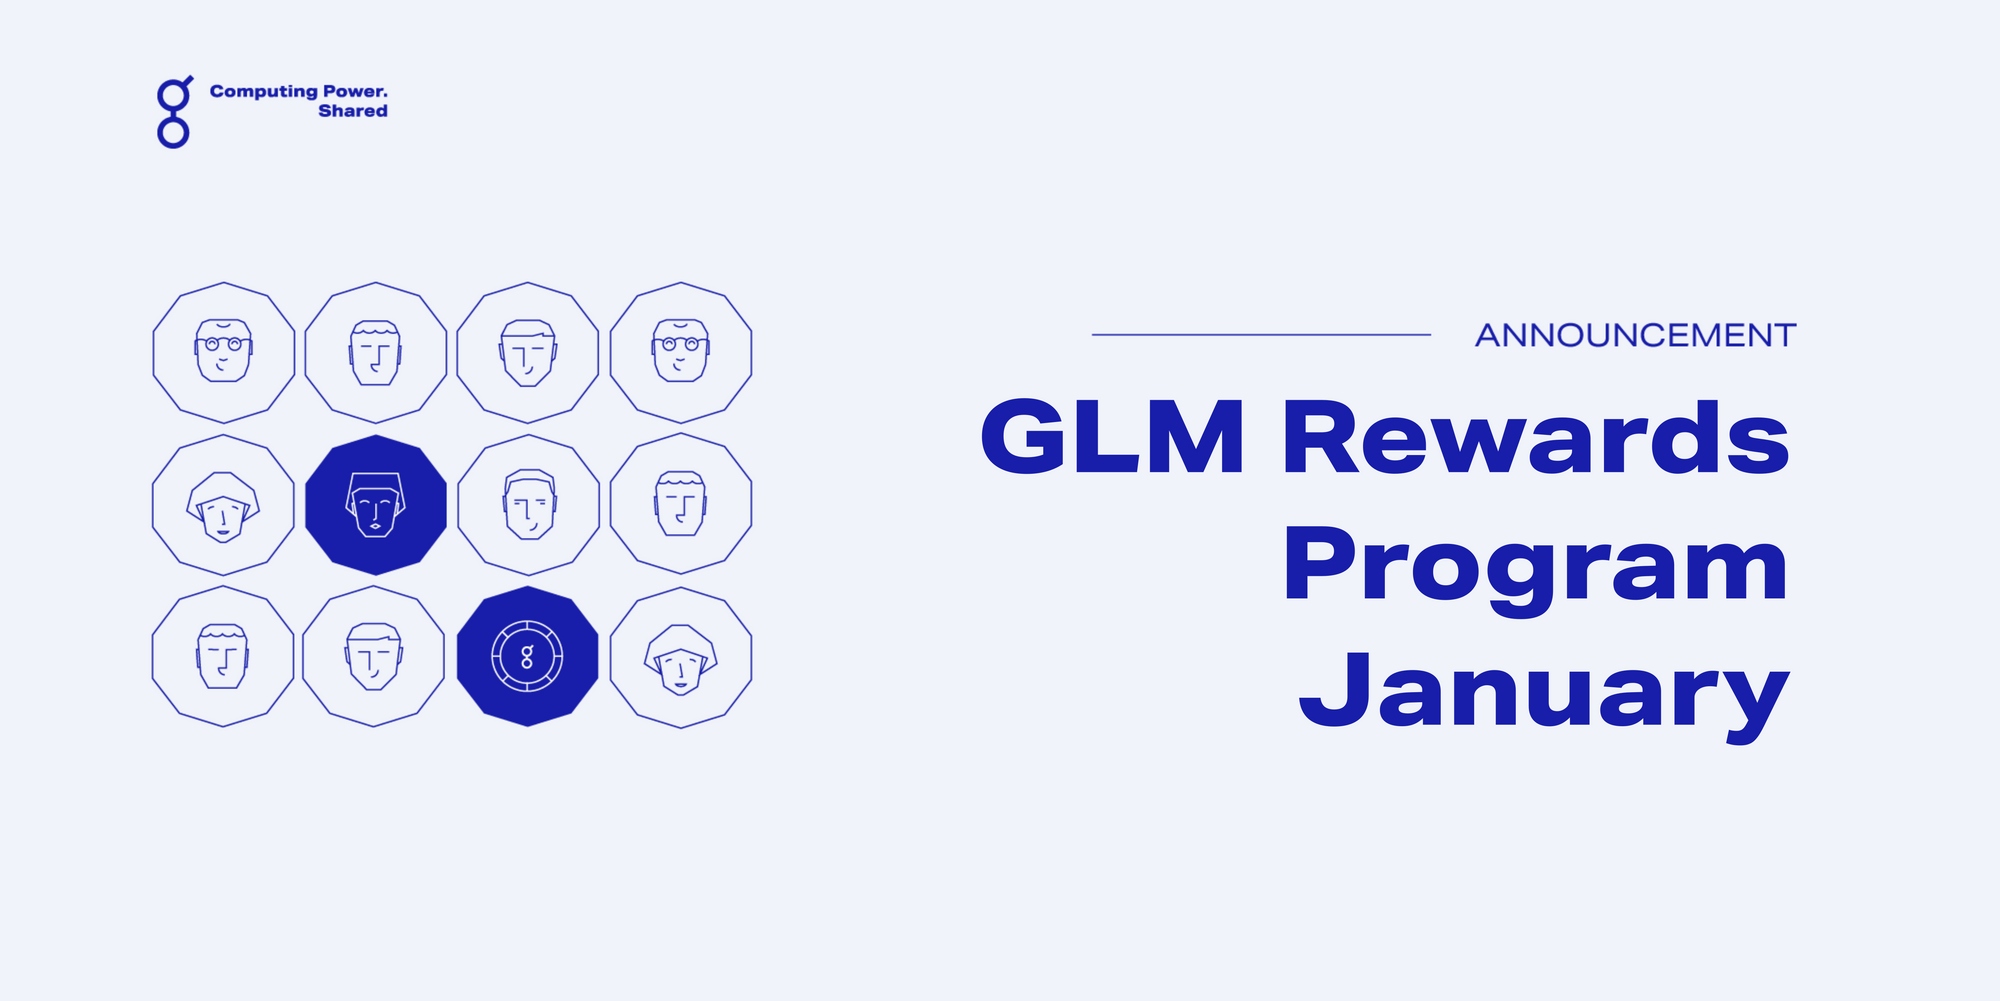 GLM Rewards Program January Update!